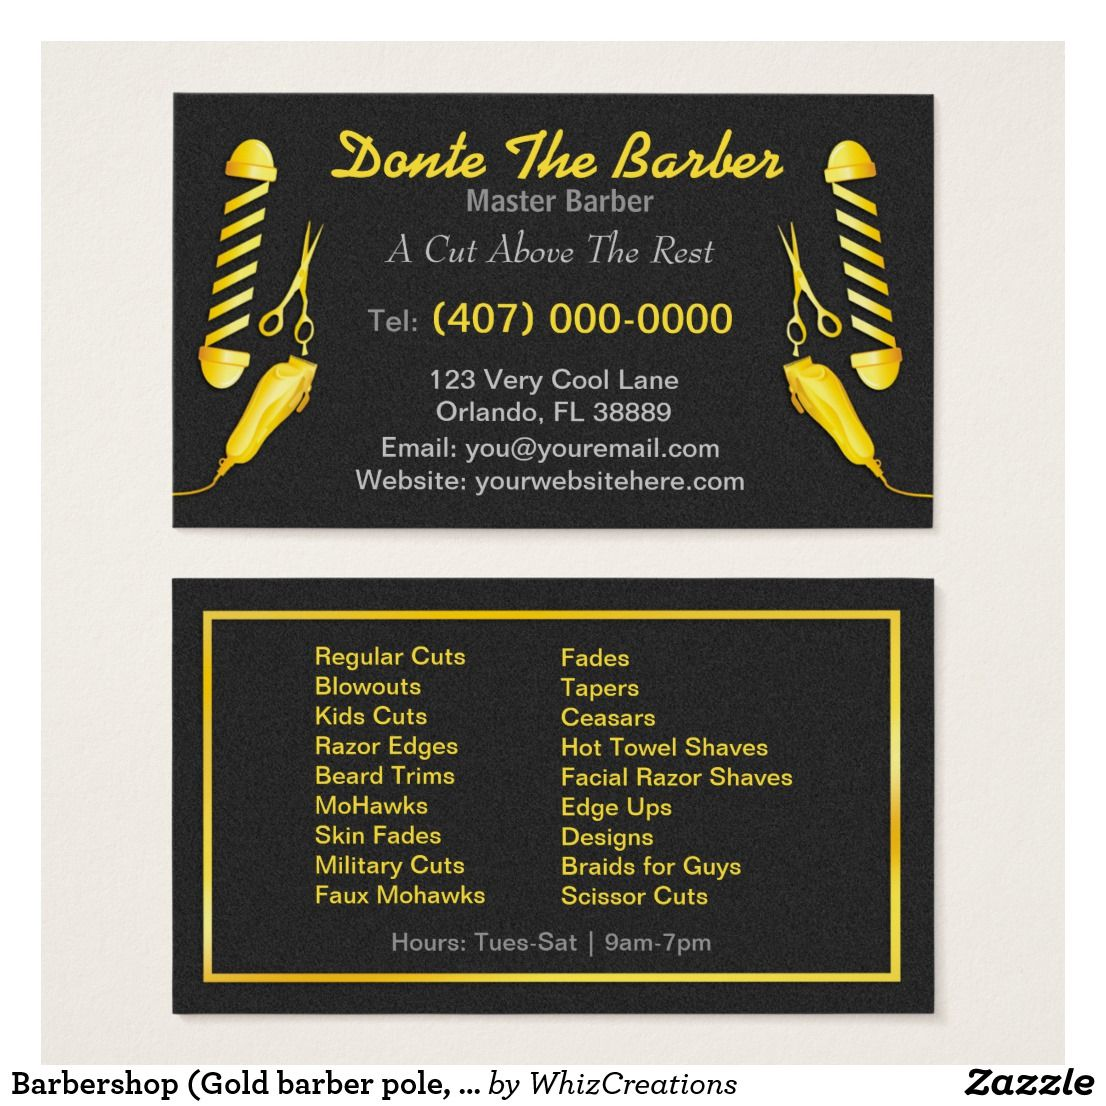 Barbershop (Gold barber pole, clippers and shears) Business Card ...